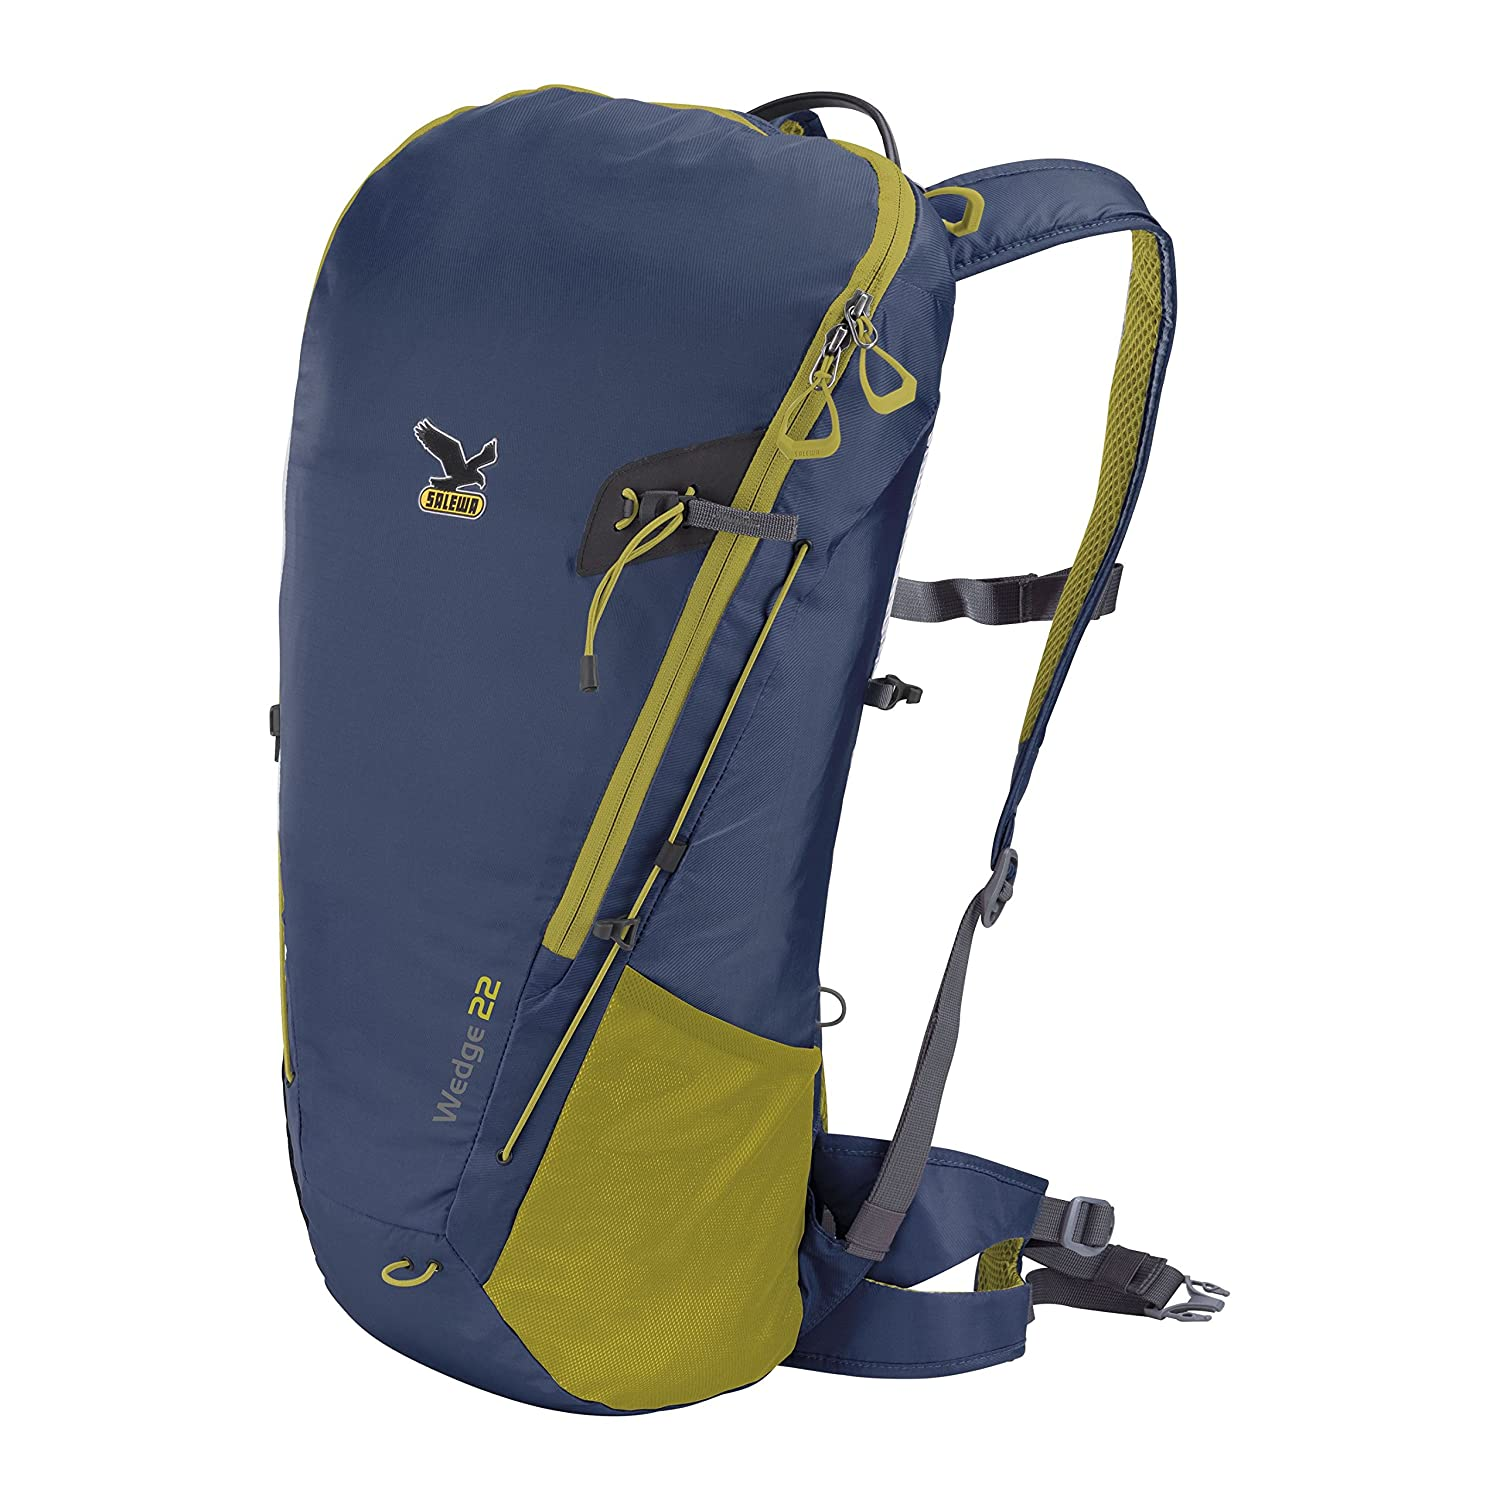 SALEWA Wanderrucksack Wedge 22 - Mochila, color deep blue, talla 57 x 30 x 2 cm: Amazon.es: Deportes y aire libre